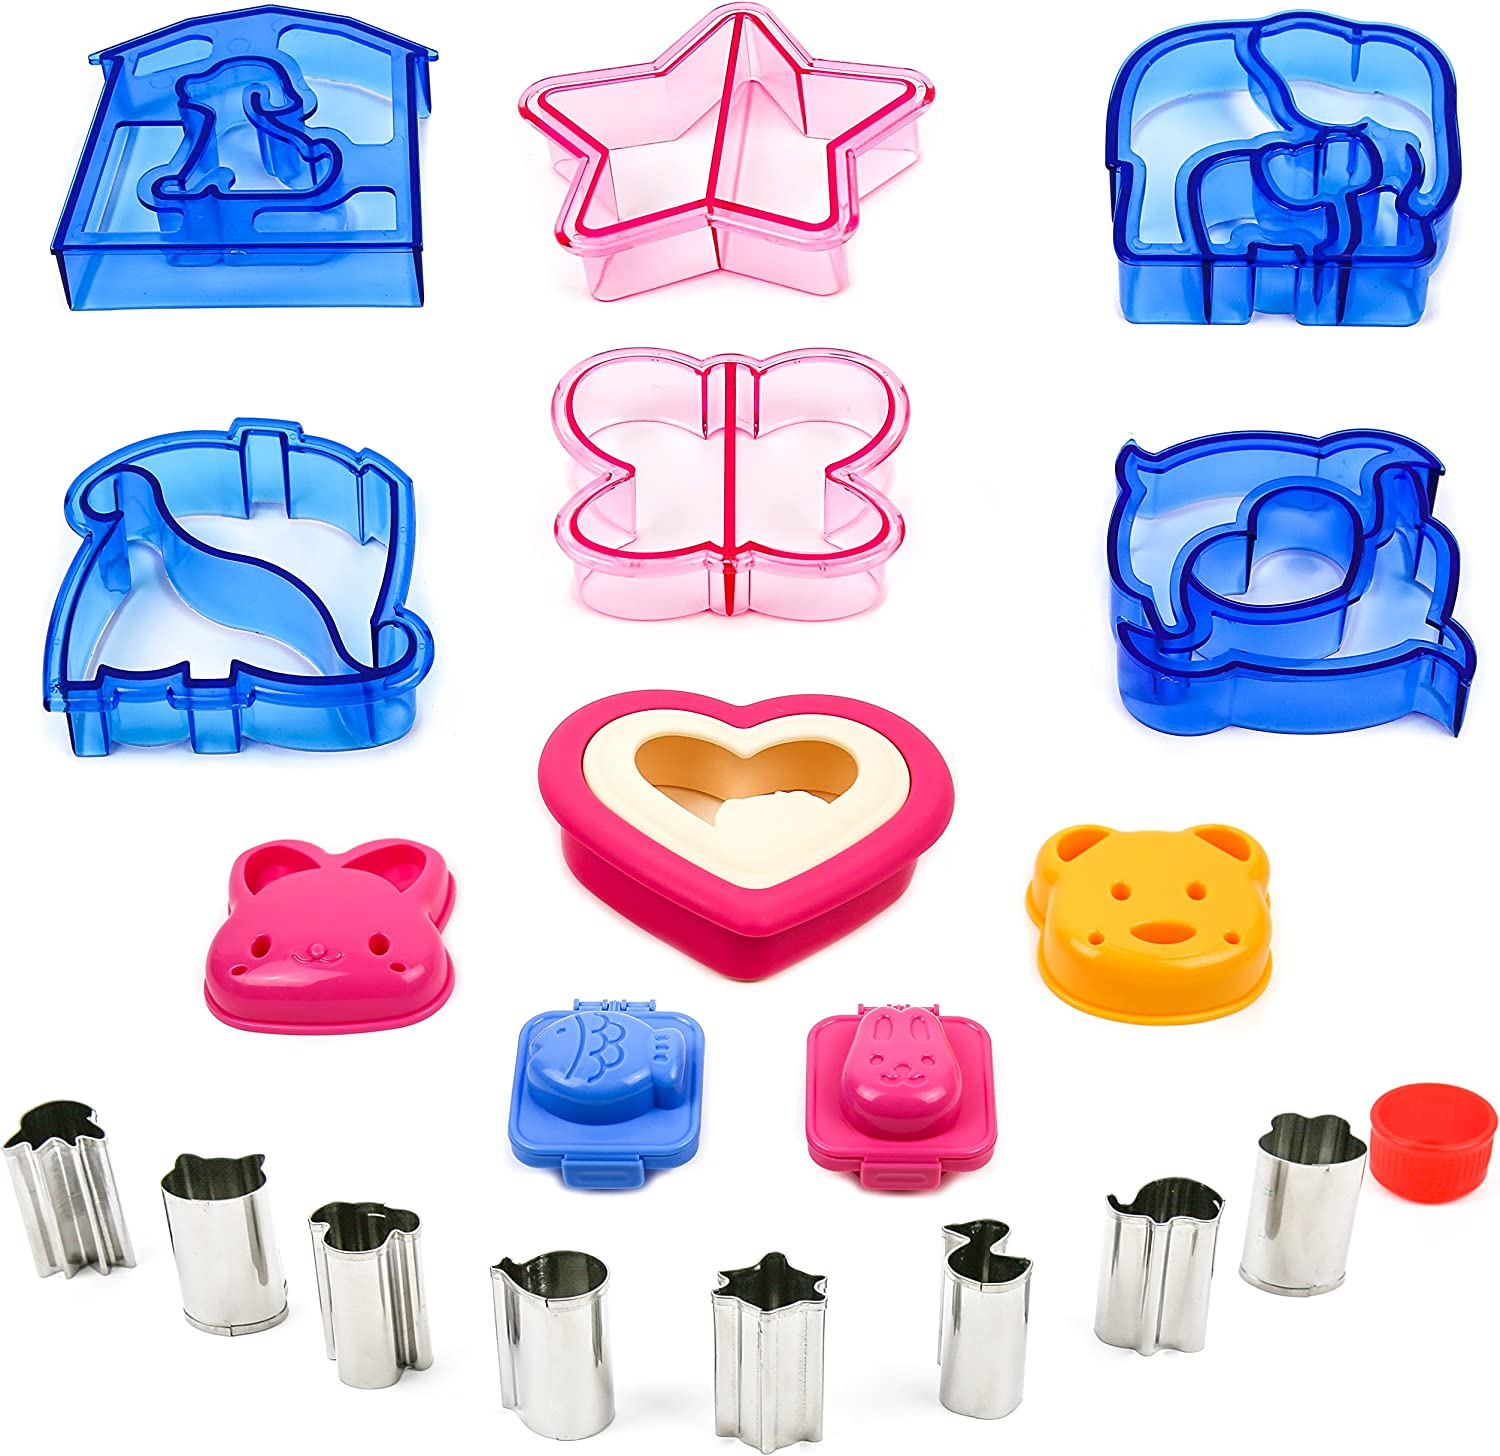 Sandwich Bread Vegetable Fruit Cutter Shape Set for Kids - Crust Cookie Cutters Shapes - Egg Sushi Rice Molds - Toast Sandwich Stamp - Accessories for Kids Food Making - Bento Lunch Box -19pcs by ZANN